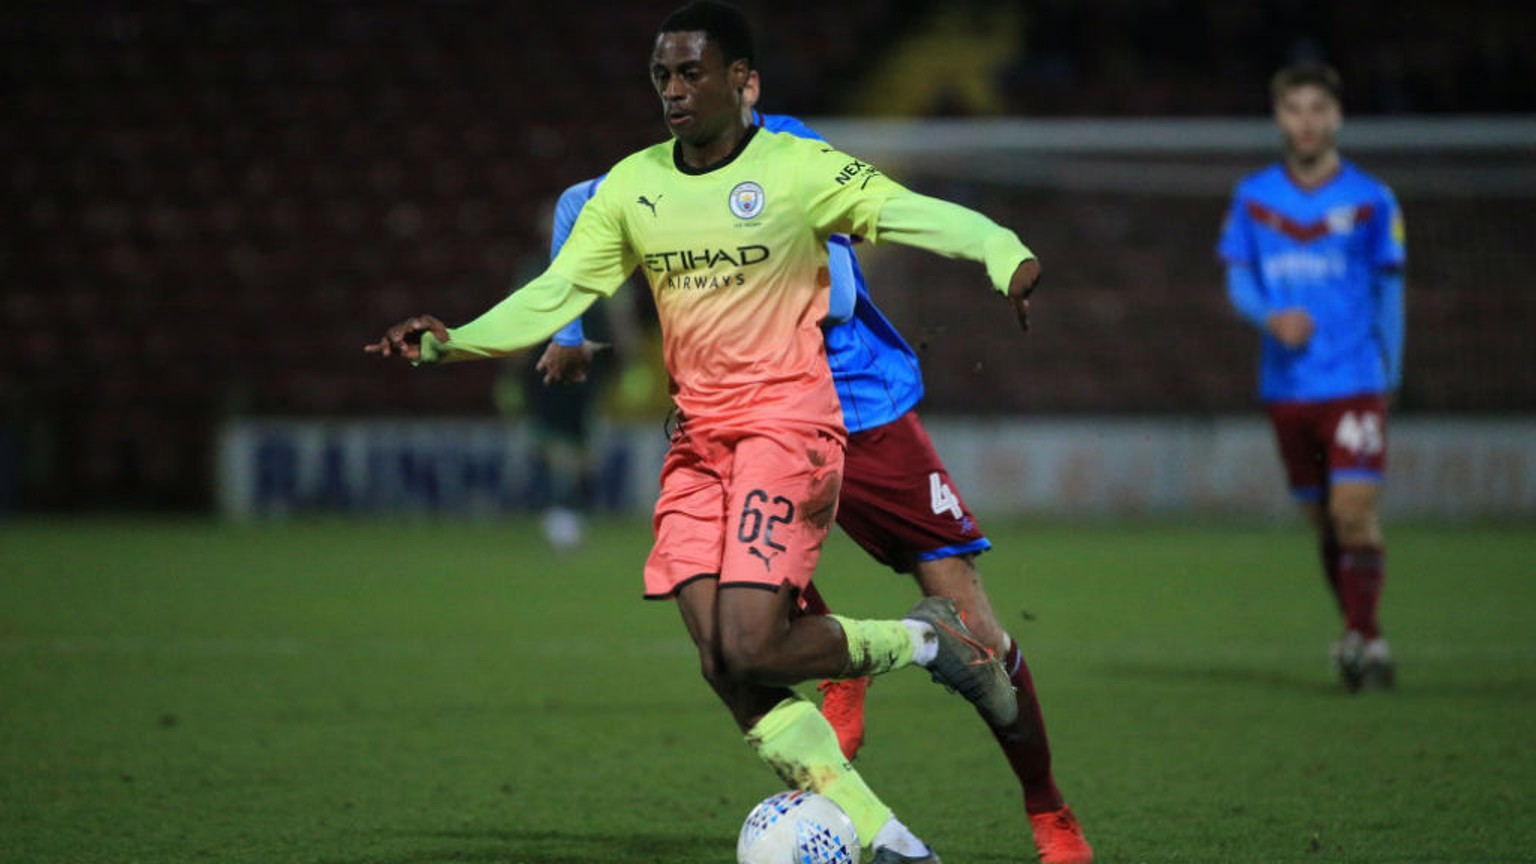 UNLUCKY BREAK: Nathanael Ogbeta was powerless to prevent a Brighton cross deflecting off his leg into the City goal